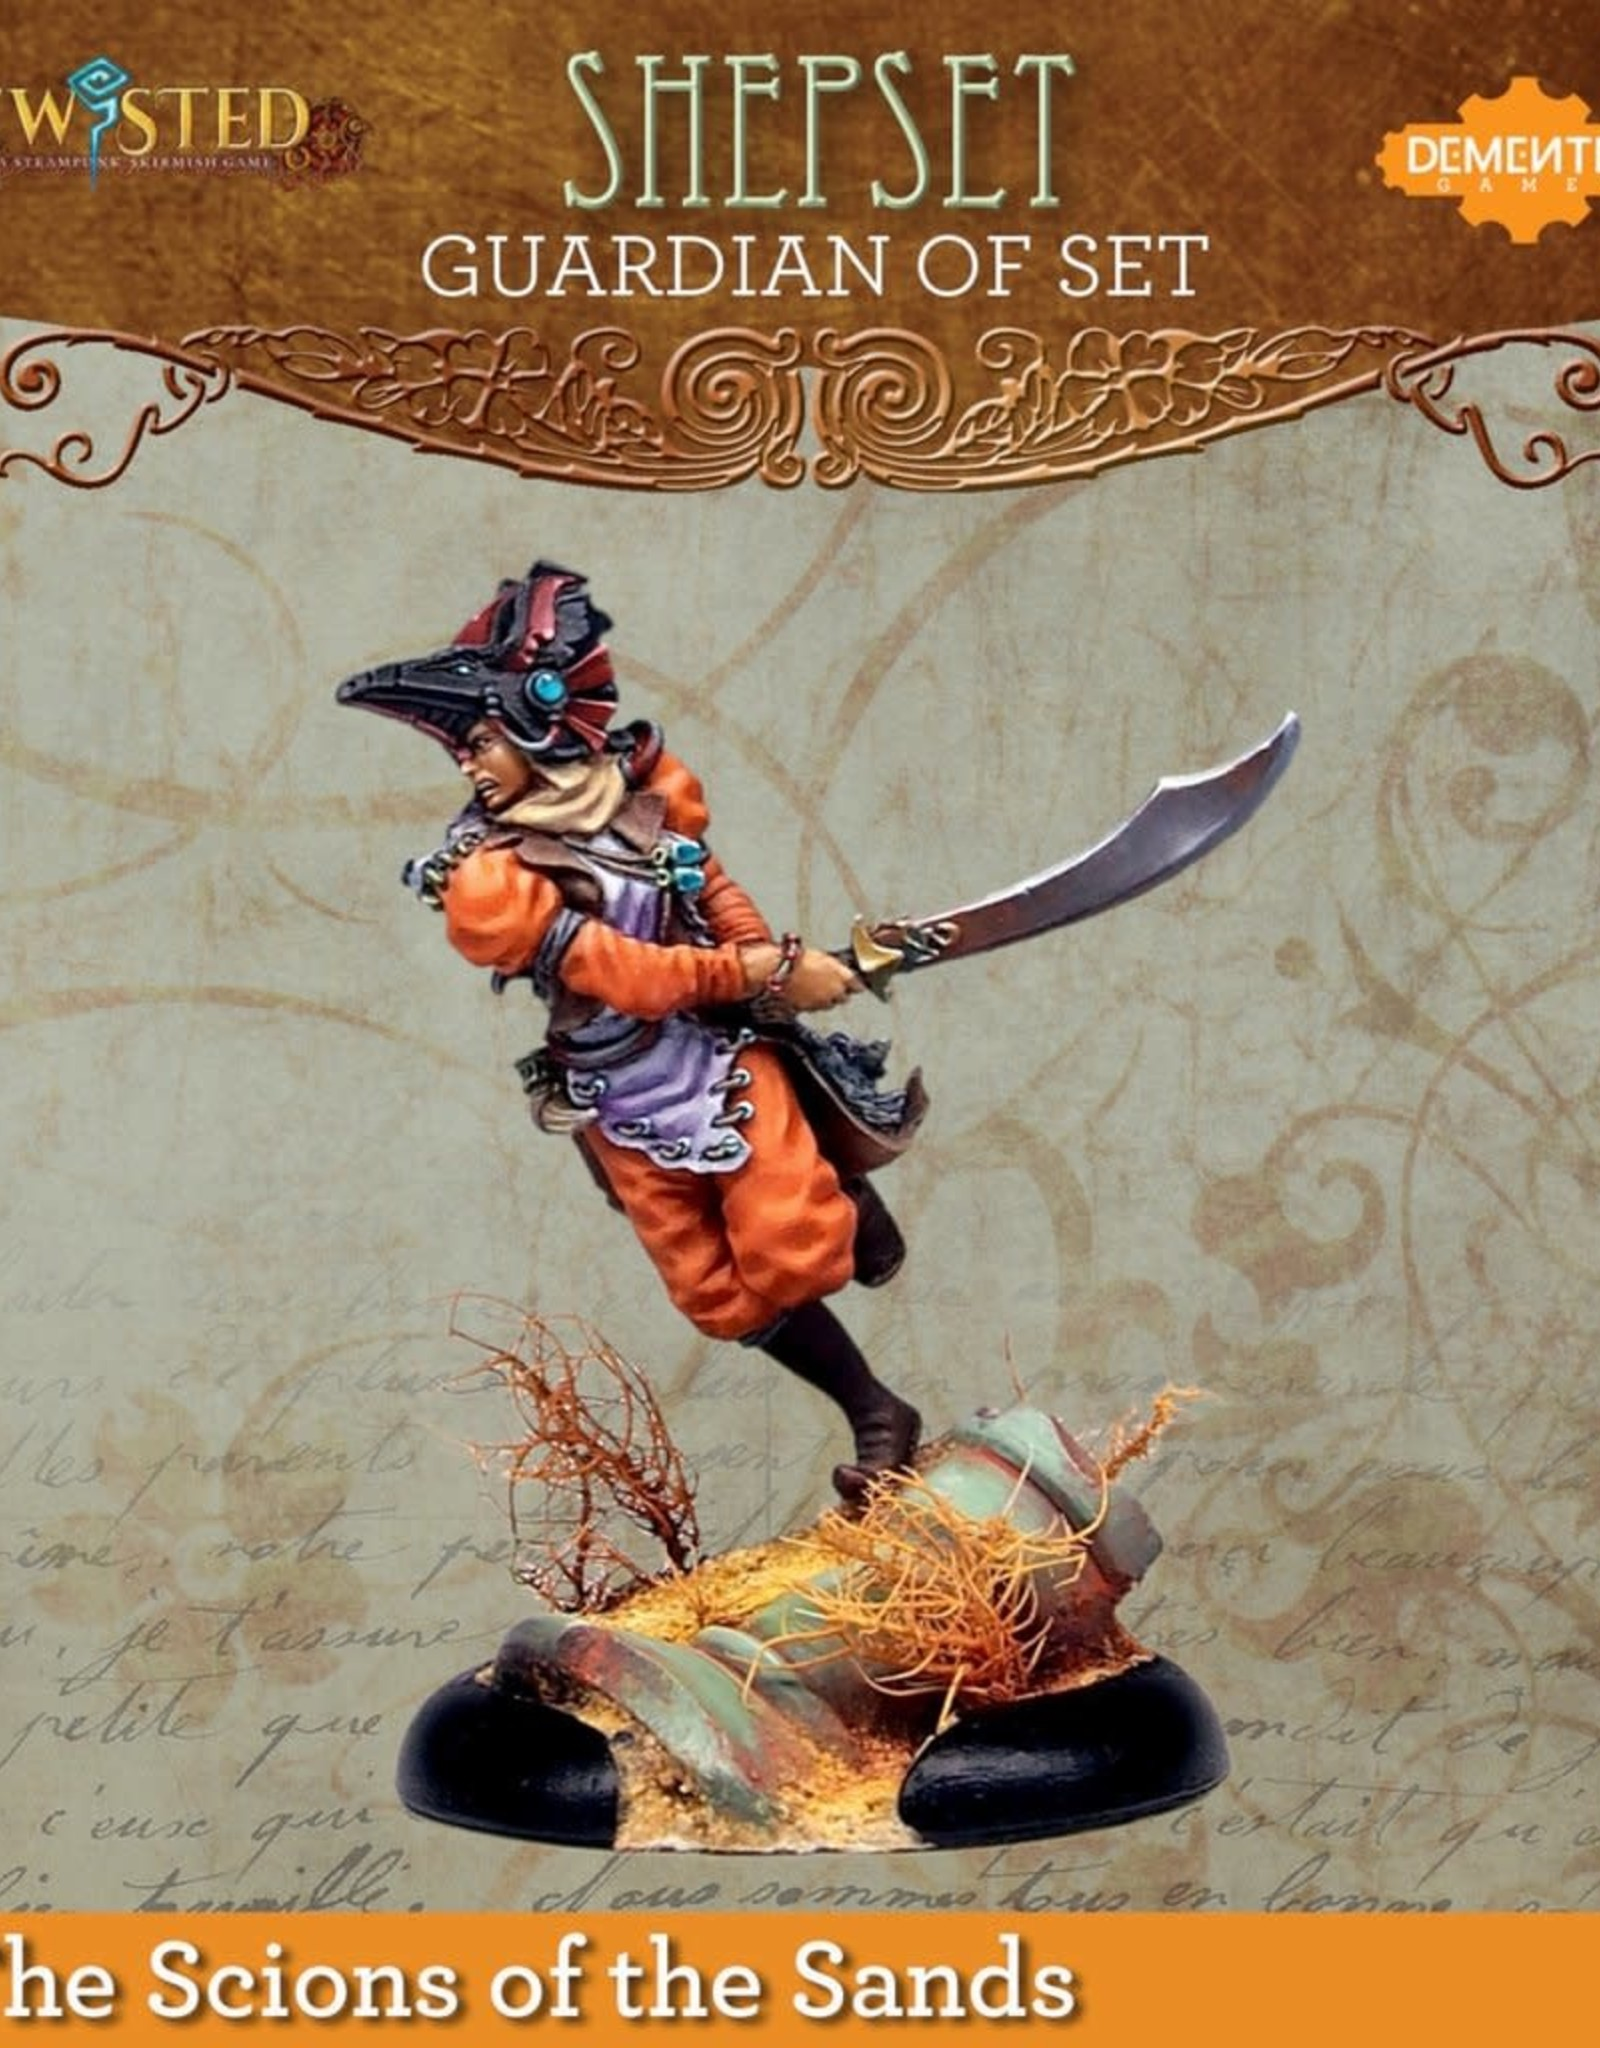 Demented Games Guardian of Set Huntress (Shepset)